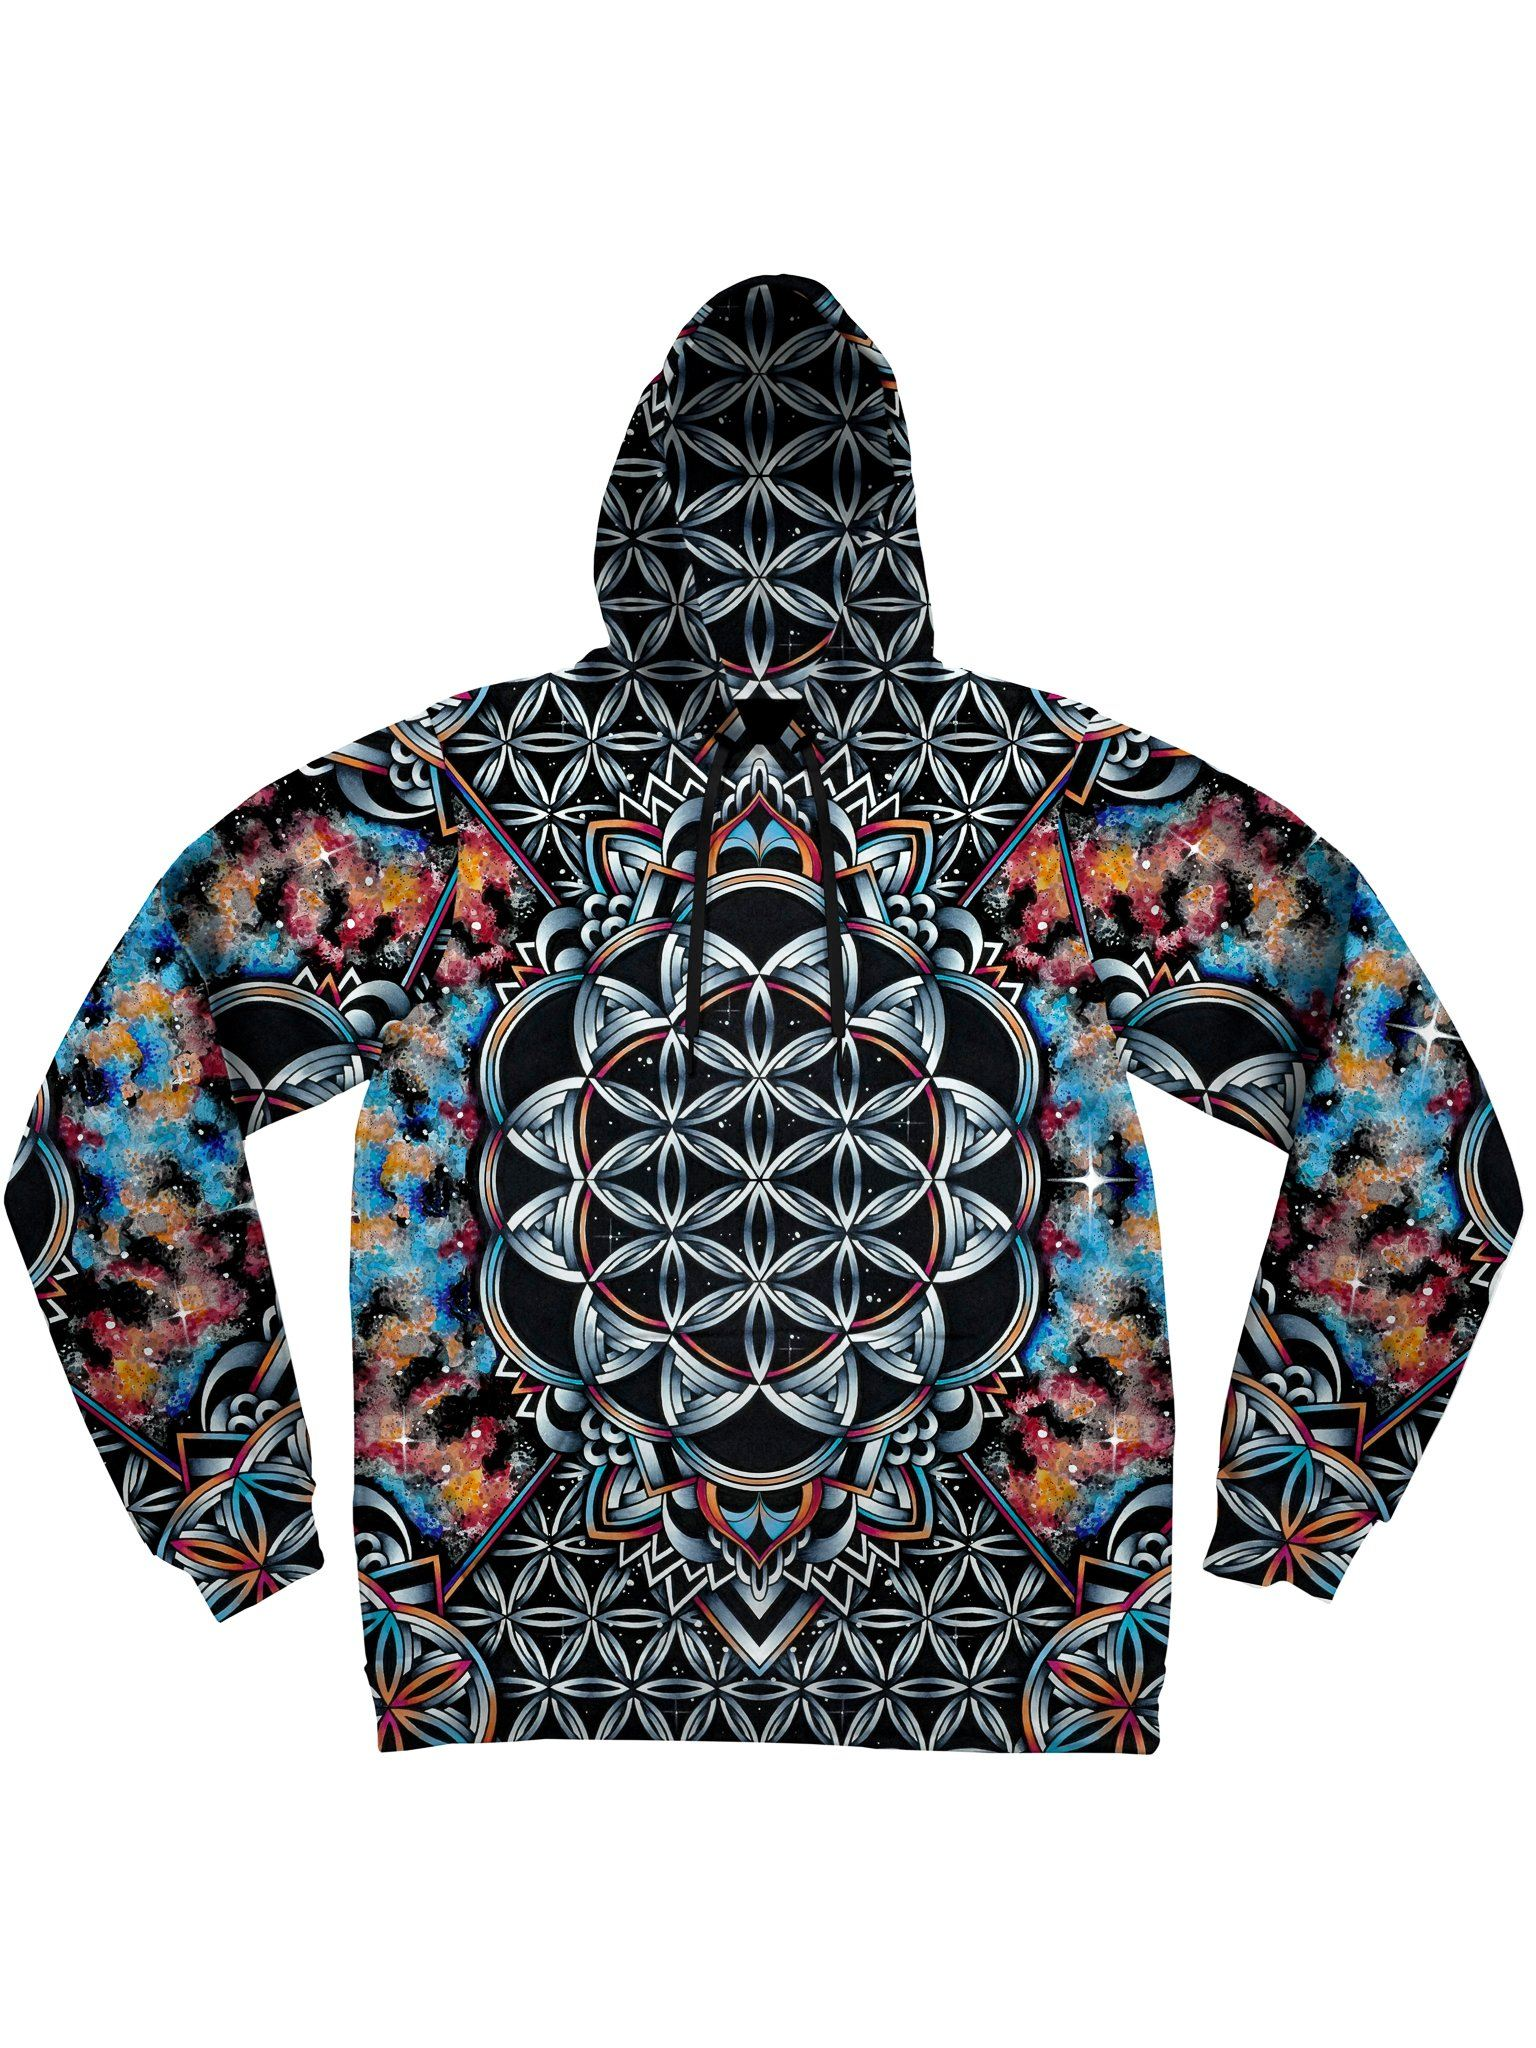 Chromatic Unisex Hoodie Pullover Hoodies Electro Threads